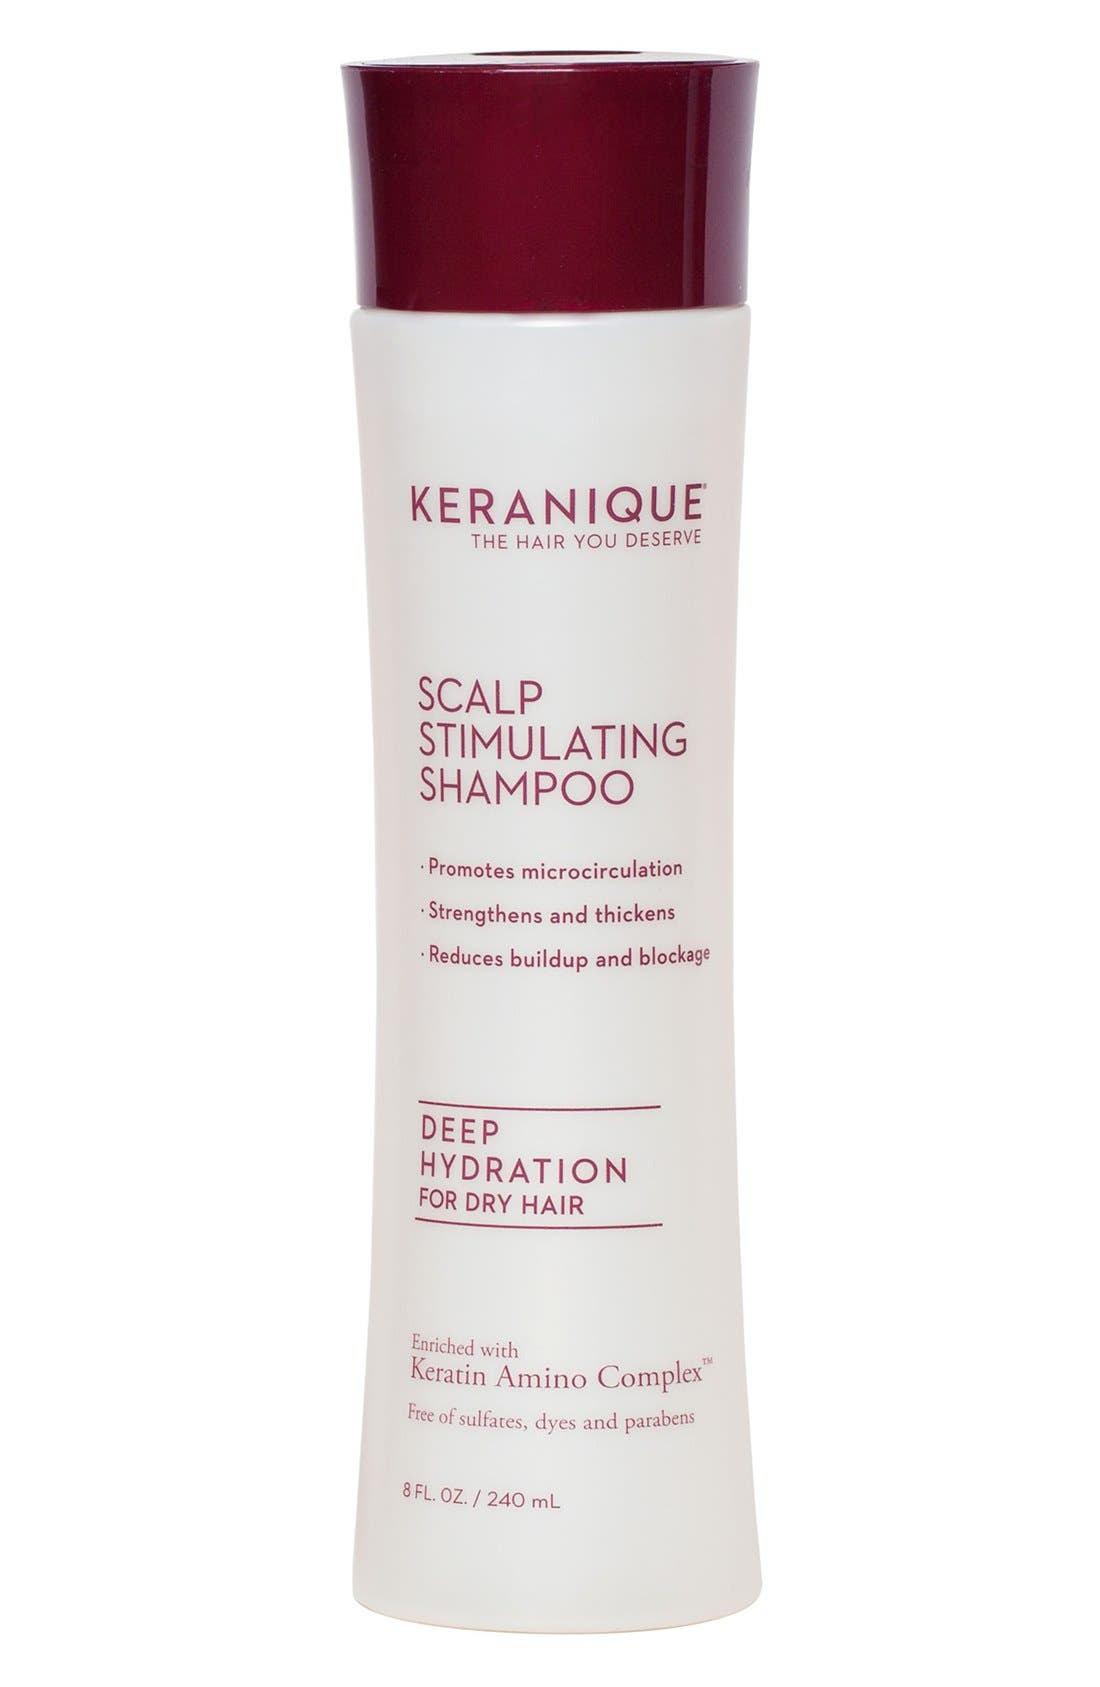 Keranique Intensive Hydrating Shampoo